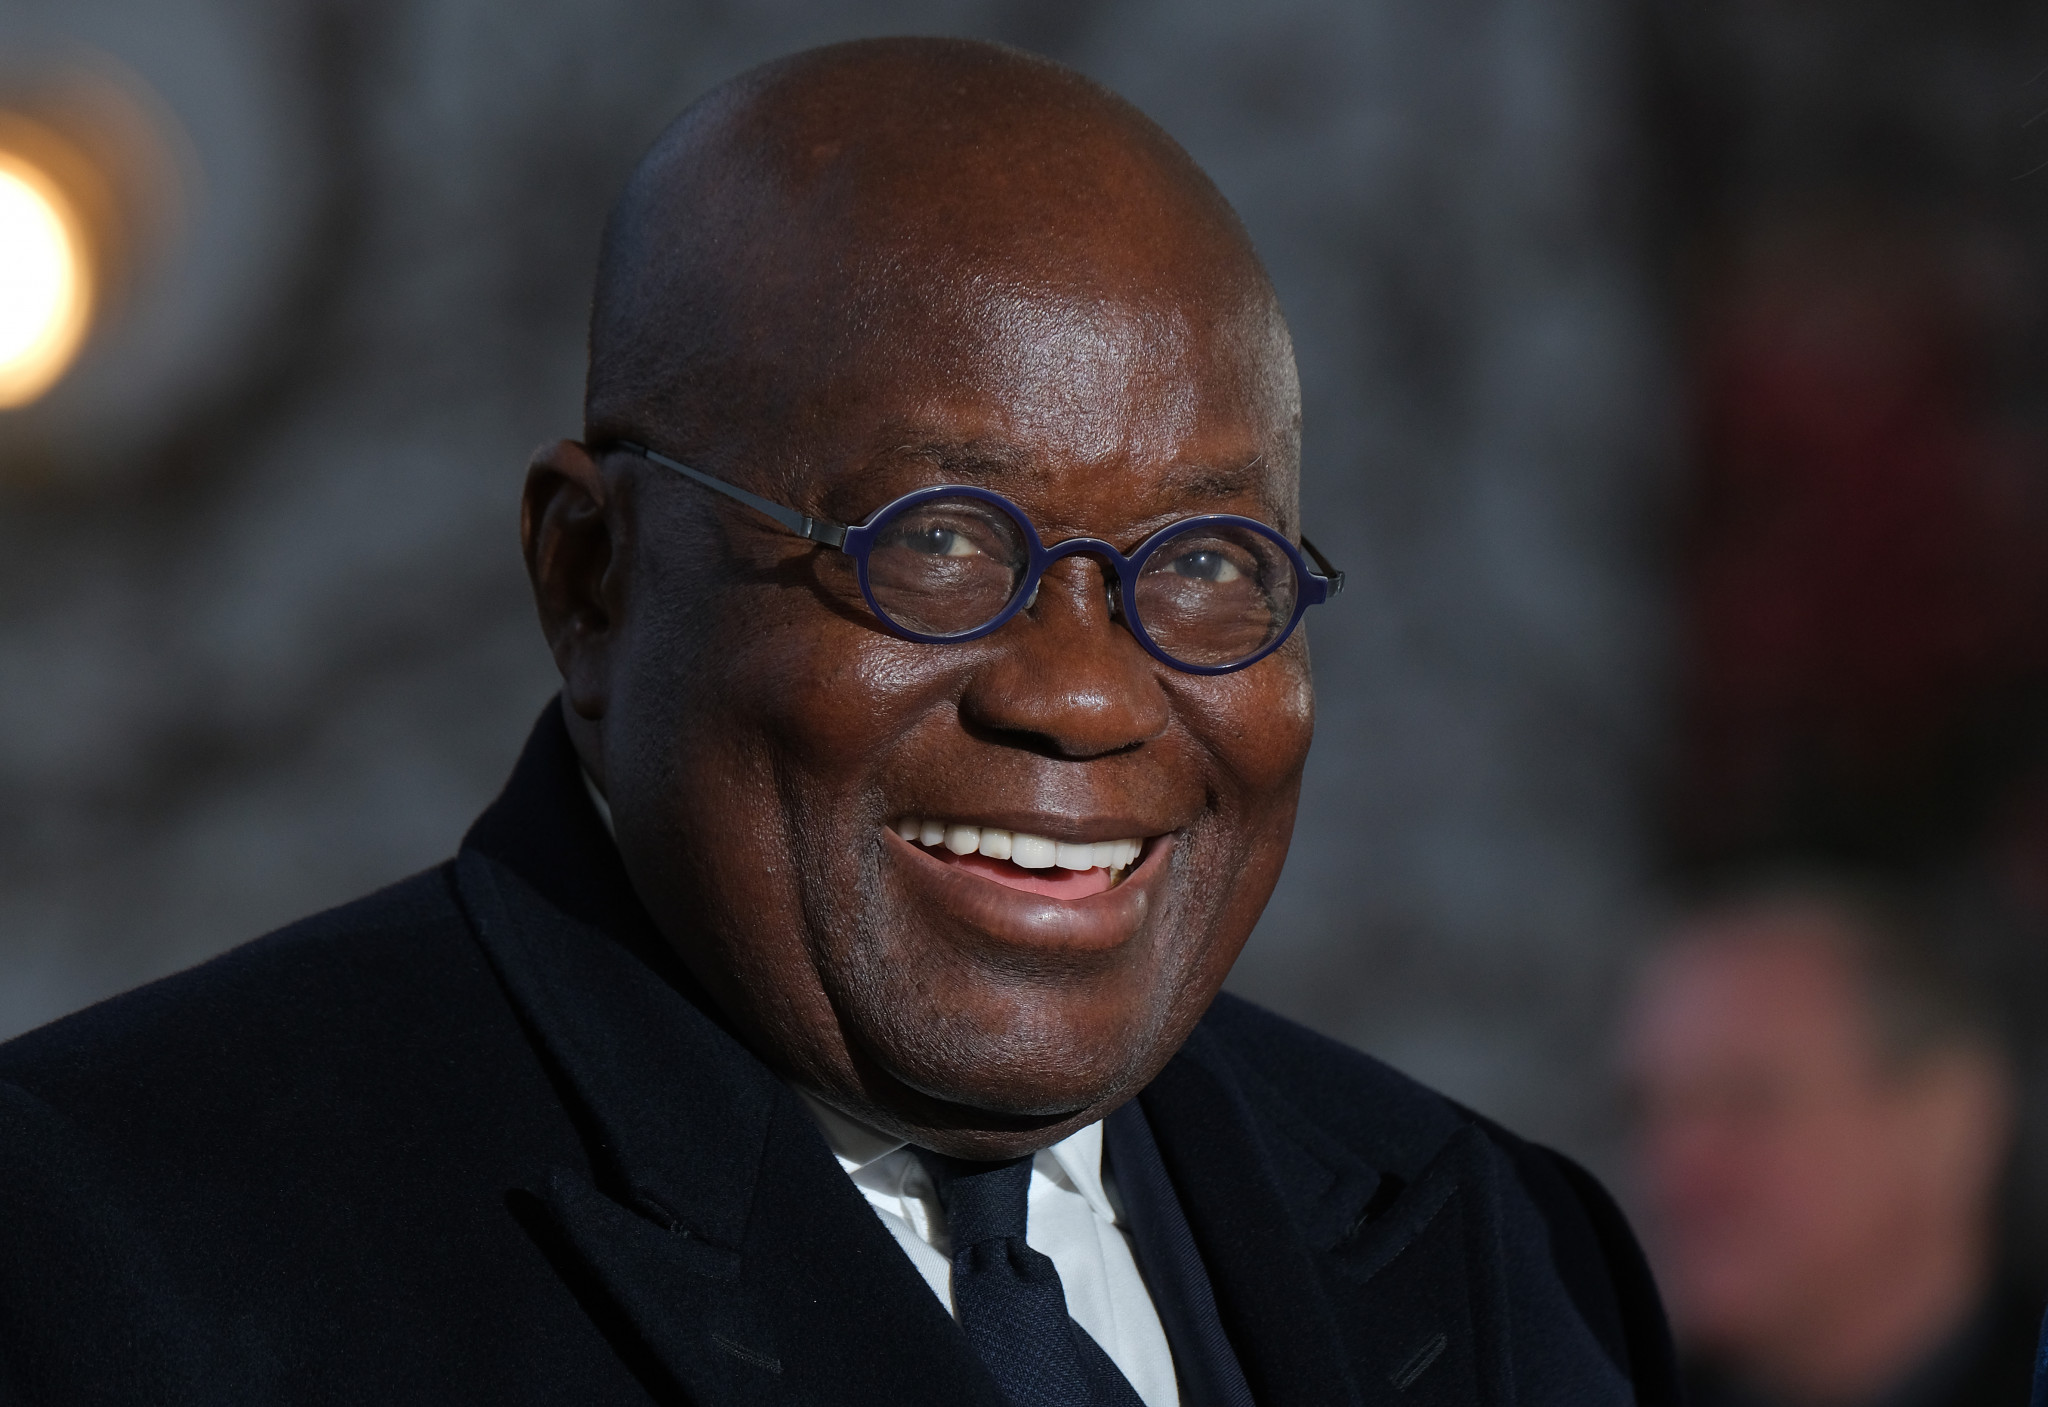 Ghana President Nana Akufo-Addo set up the African Games 2023 Organising Committee in 2020 ©Getty Images